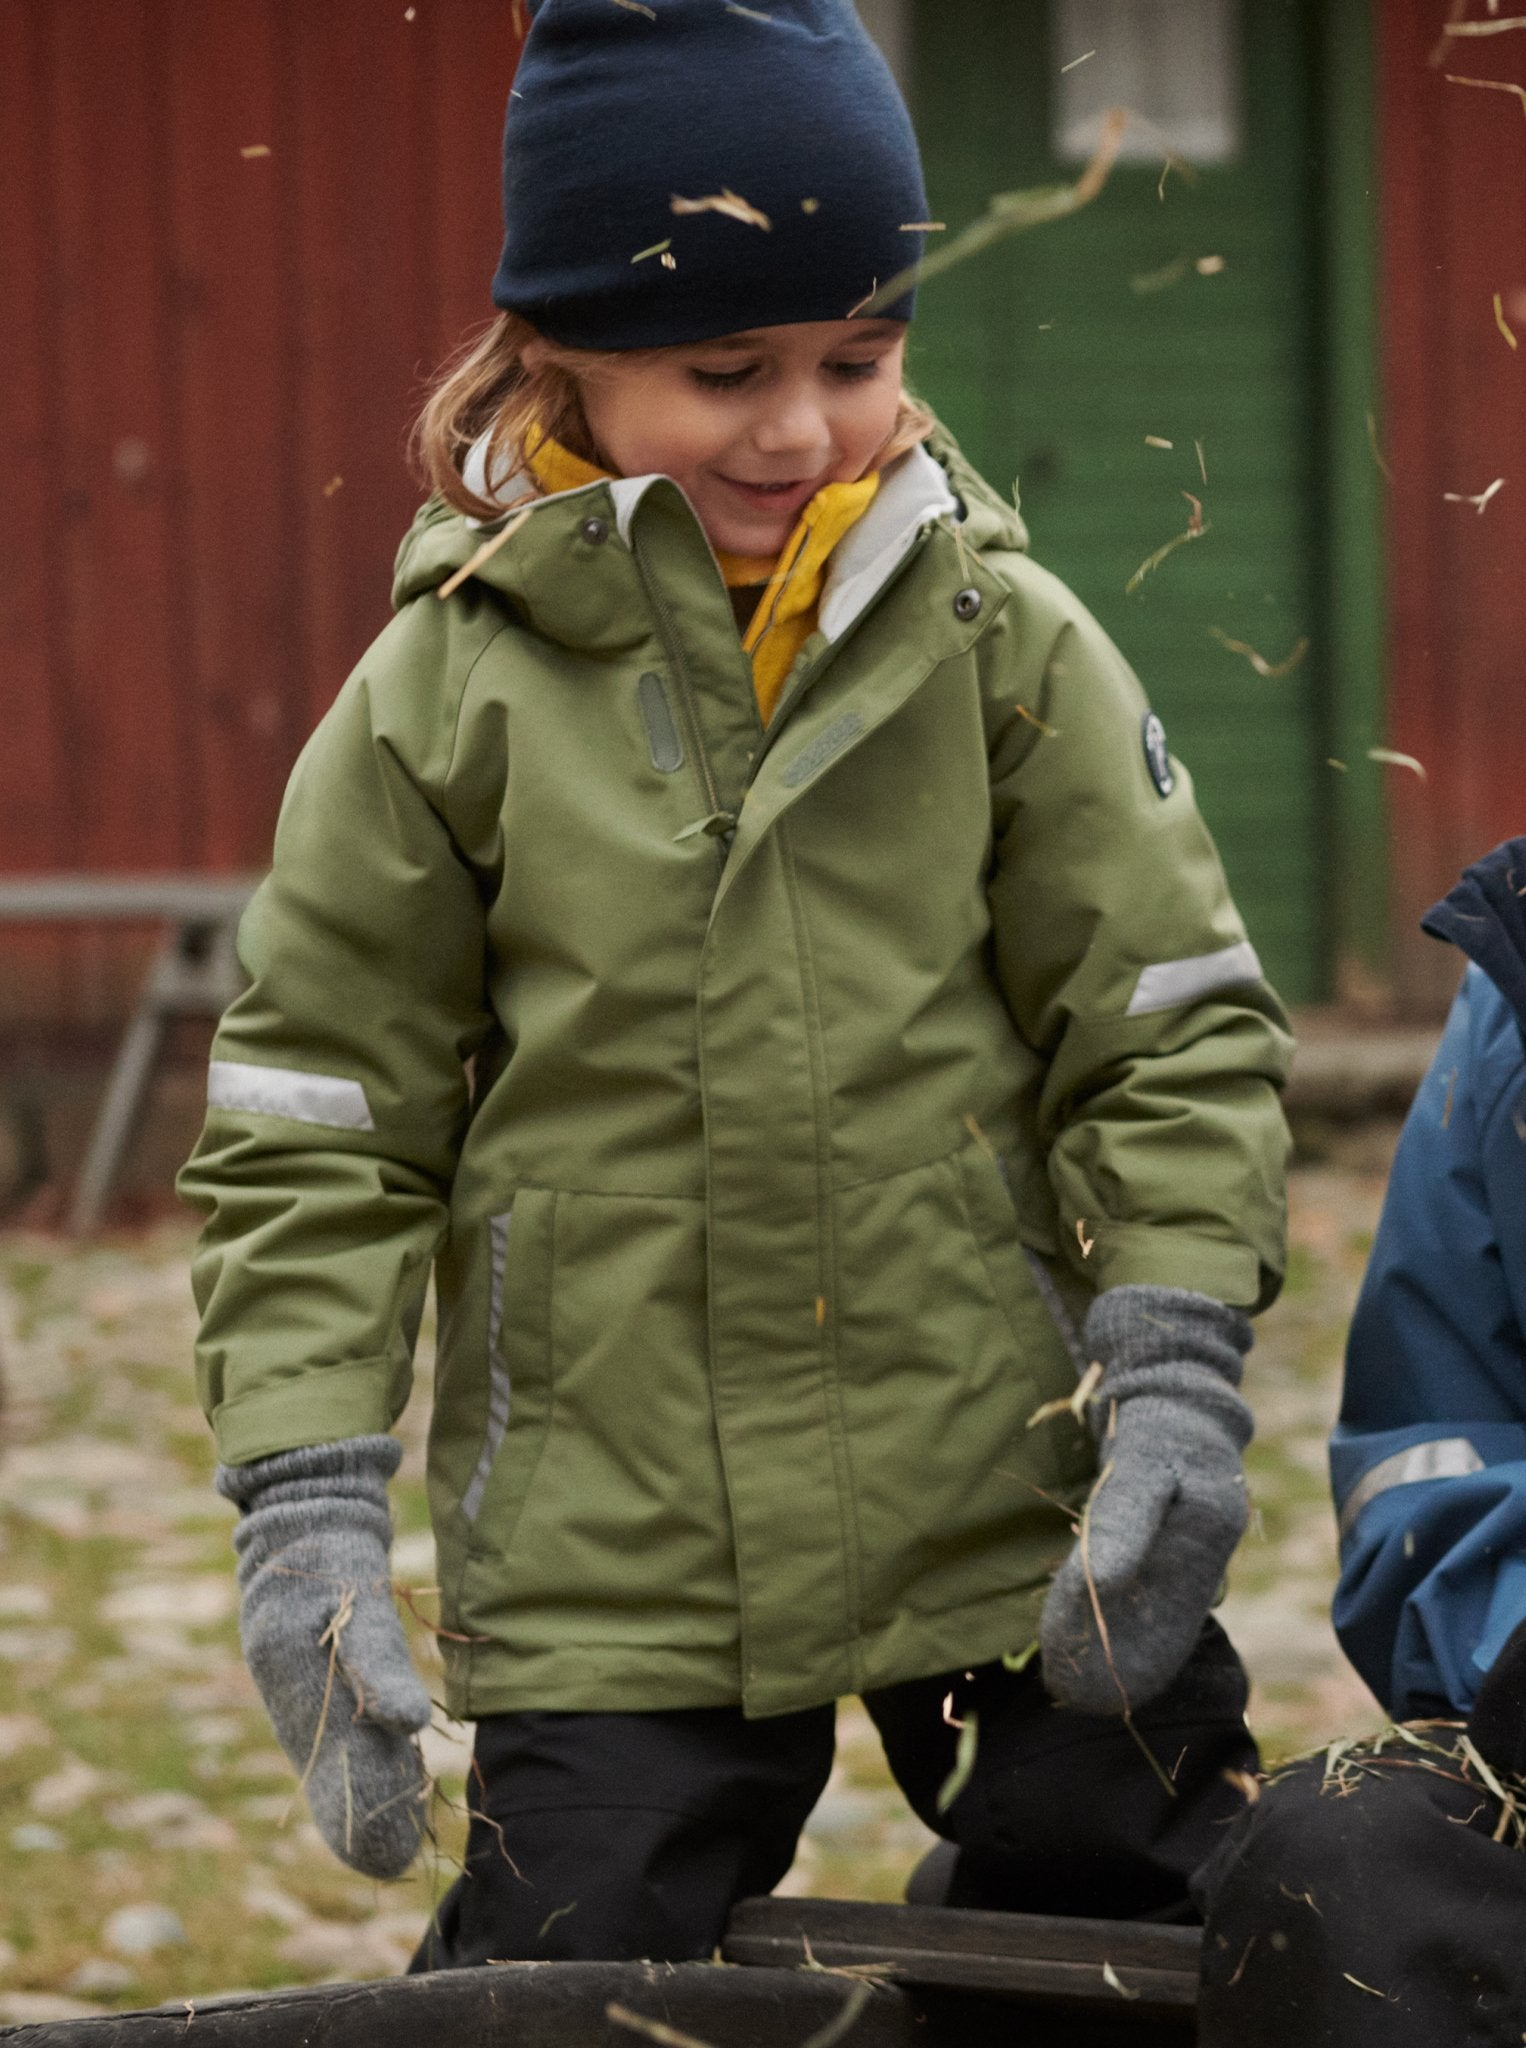 Girl playing outside wearing 100% waterproof kids coat in green and 100% waterproof trousers in black. Accessories with warm merino wool beanie hat in navy and grey wool gloves